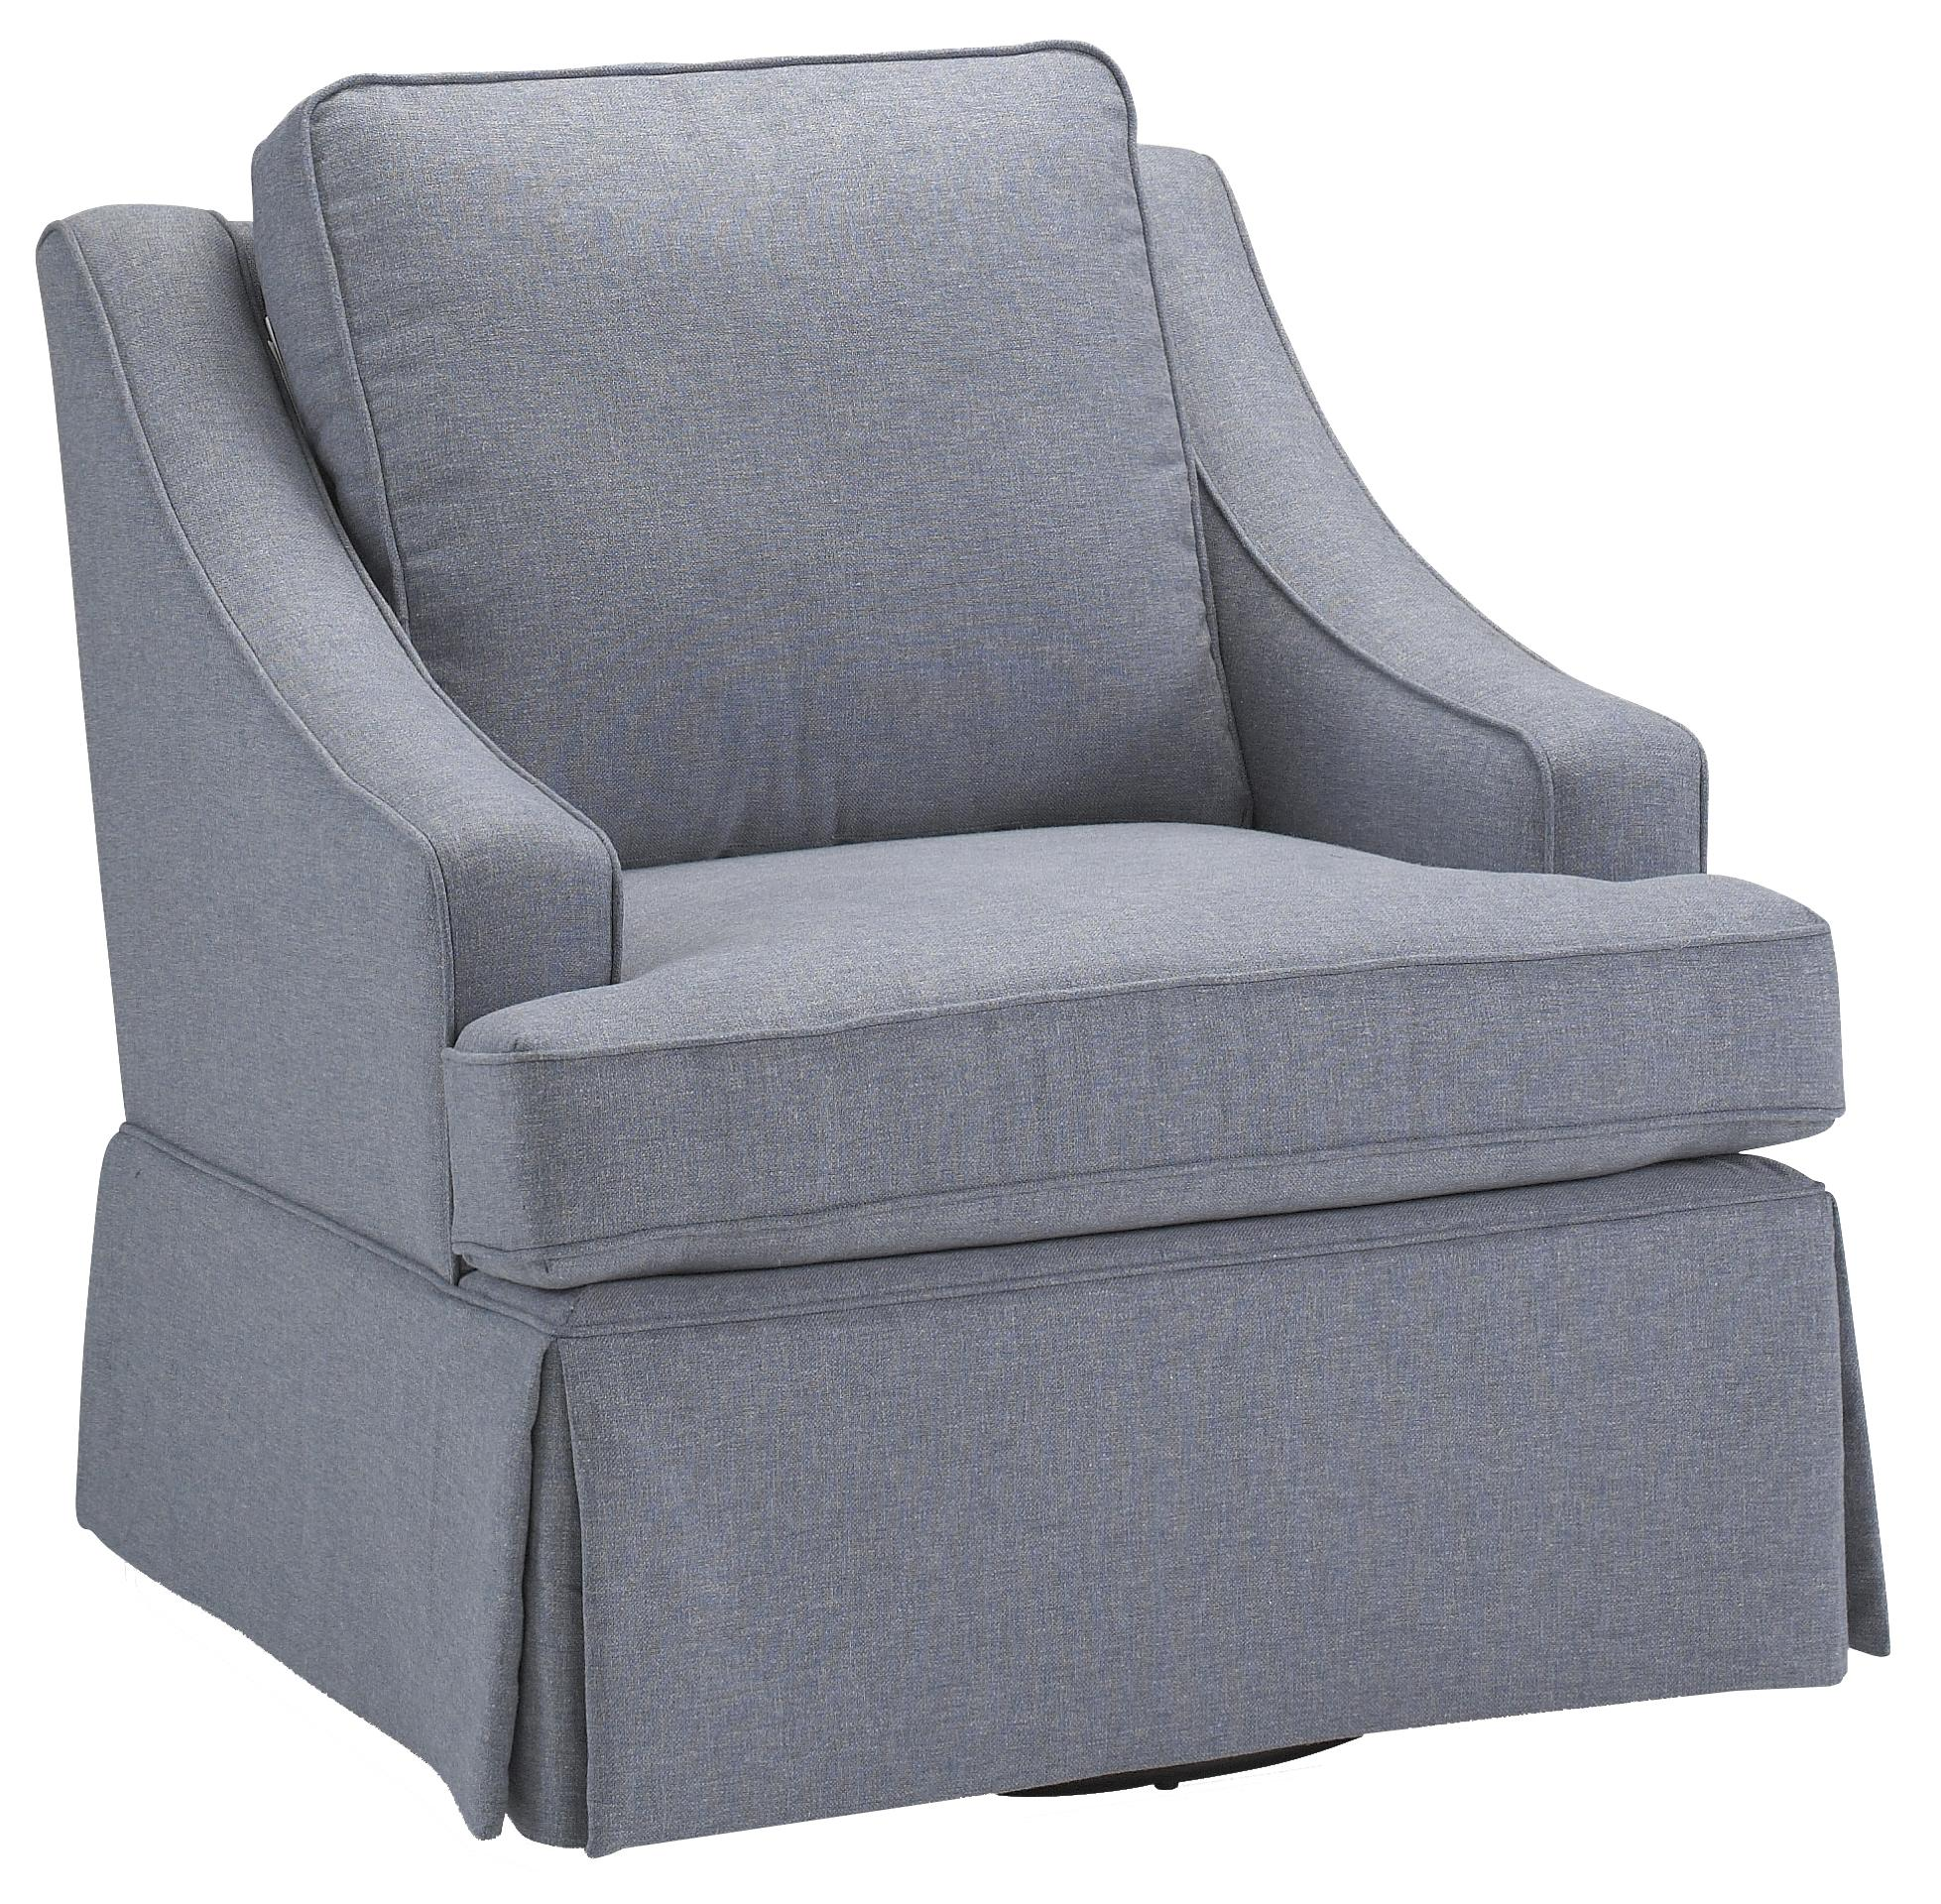 Best Home Furnishings Chairs - Swivel Glide Ayla Swivel Rocker - Item Number: 2149